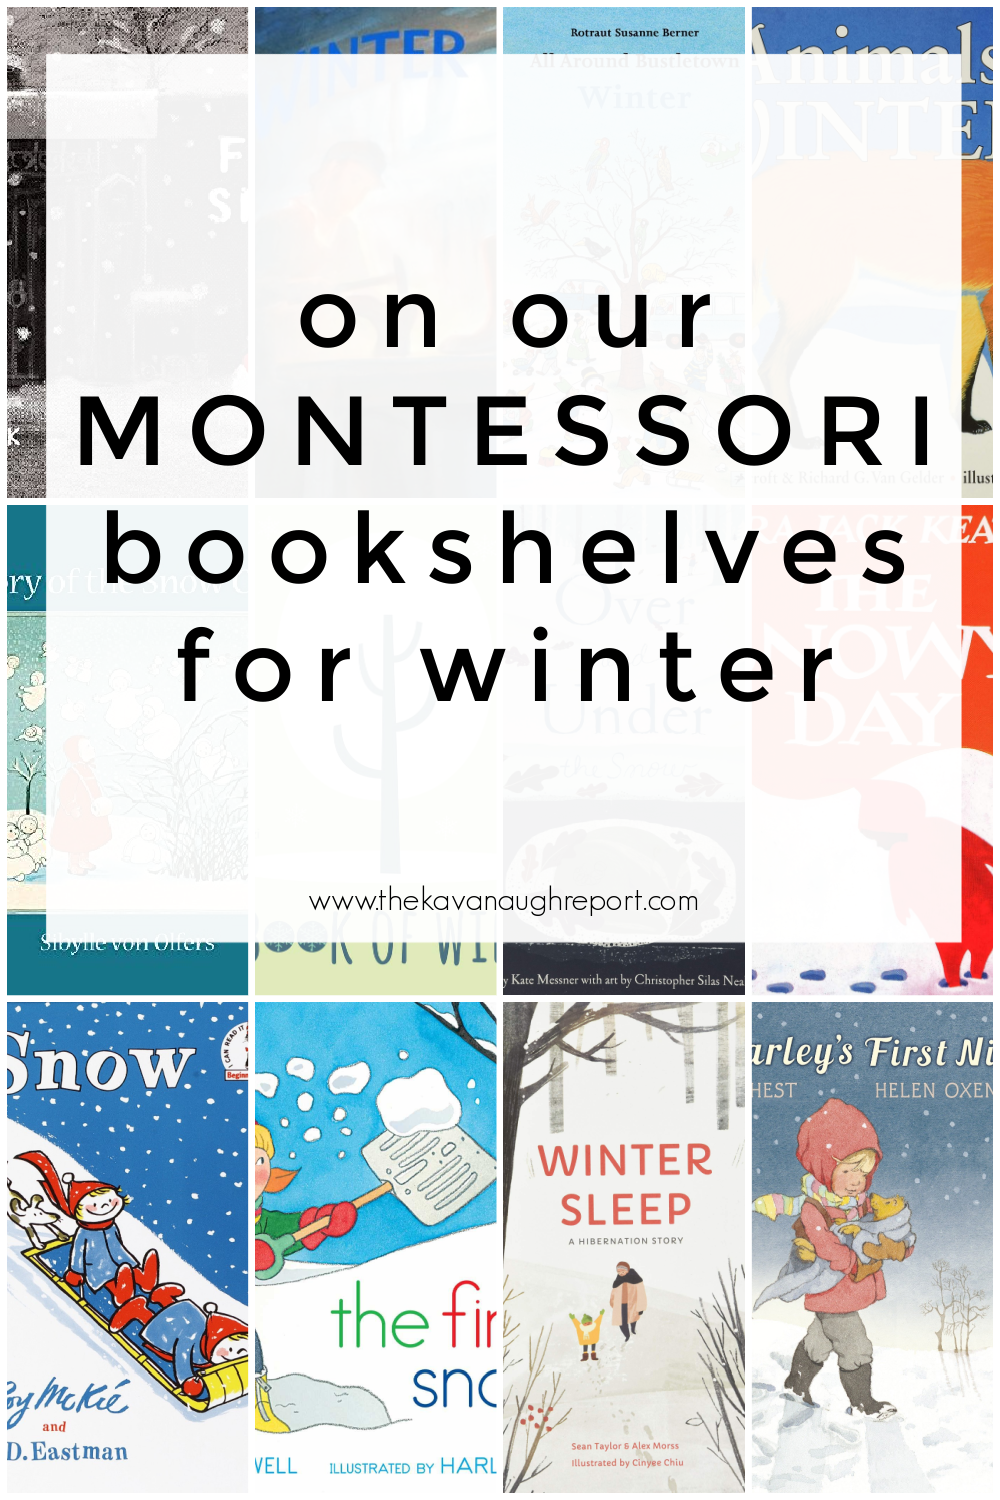 Here's a look at the Montessori friendly books on our shelves this winter from babies through elementary school.